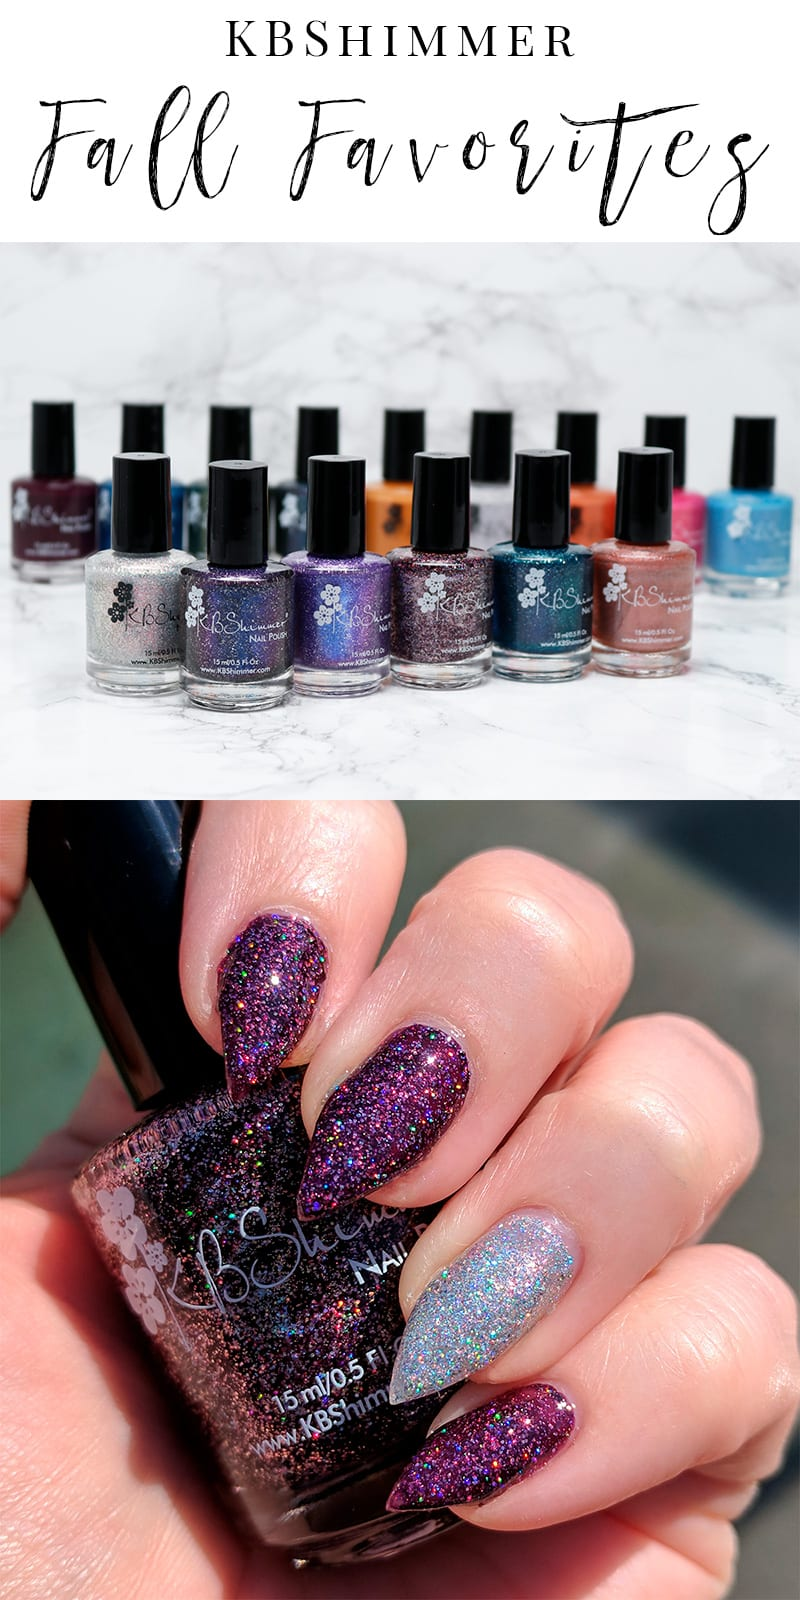 KBShimmer Fall 2017 Collection - I'm bringing you the new KBShimmer Fall 2017 Collection, plus some of my all-time favorite KBShimmer nail polishes. KBShimmer is my favorite nail polish maker. #kbshimmer #fall #nailpolish